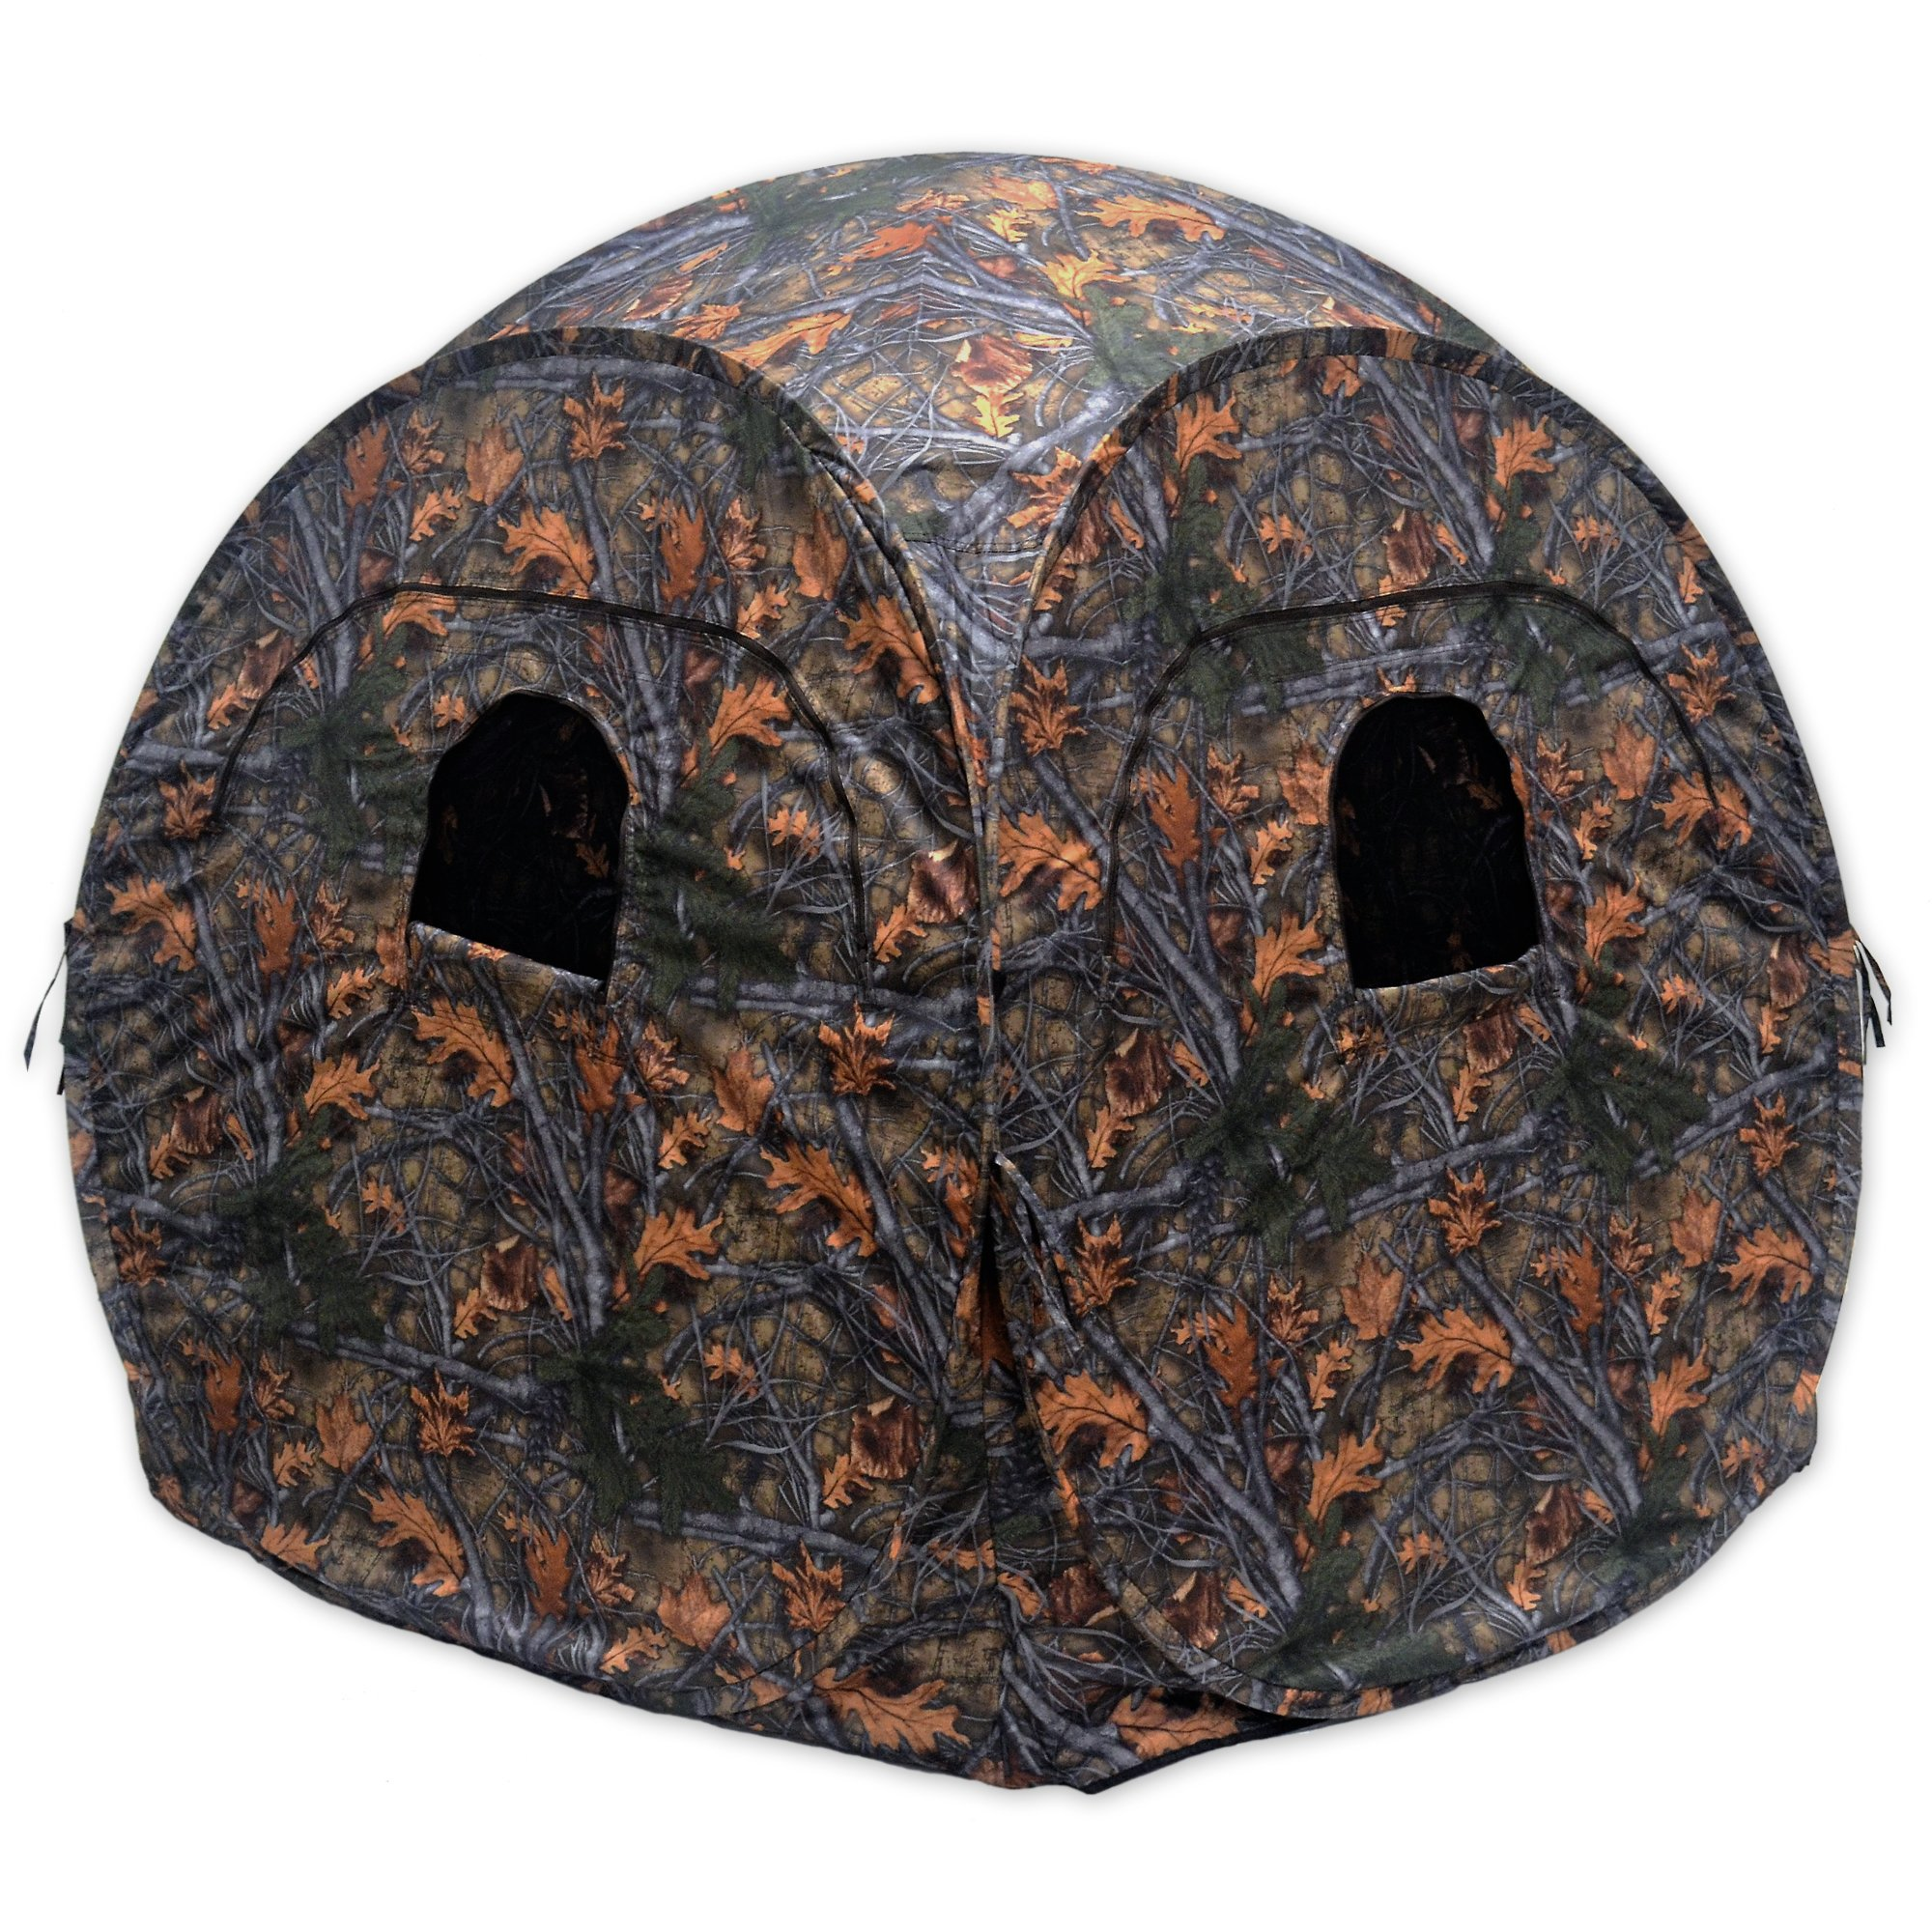 "Copper Ridge Outdoors Ground Blind - Spring Steel Pop Up Hunting Ground Blinds - Pop Up Blinds for Deer Hunting, 58"" x 58"" x 65""H, Shoot Through Mesh Windows, Portable Blind"